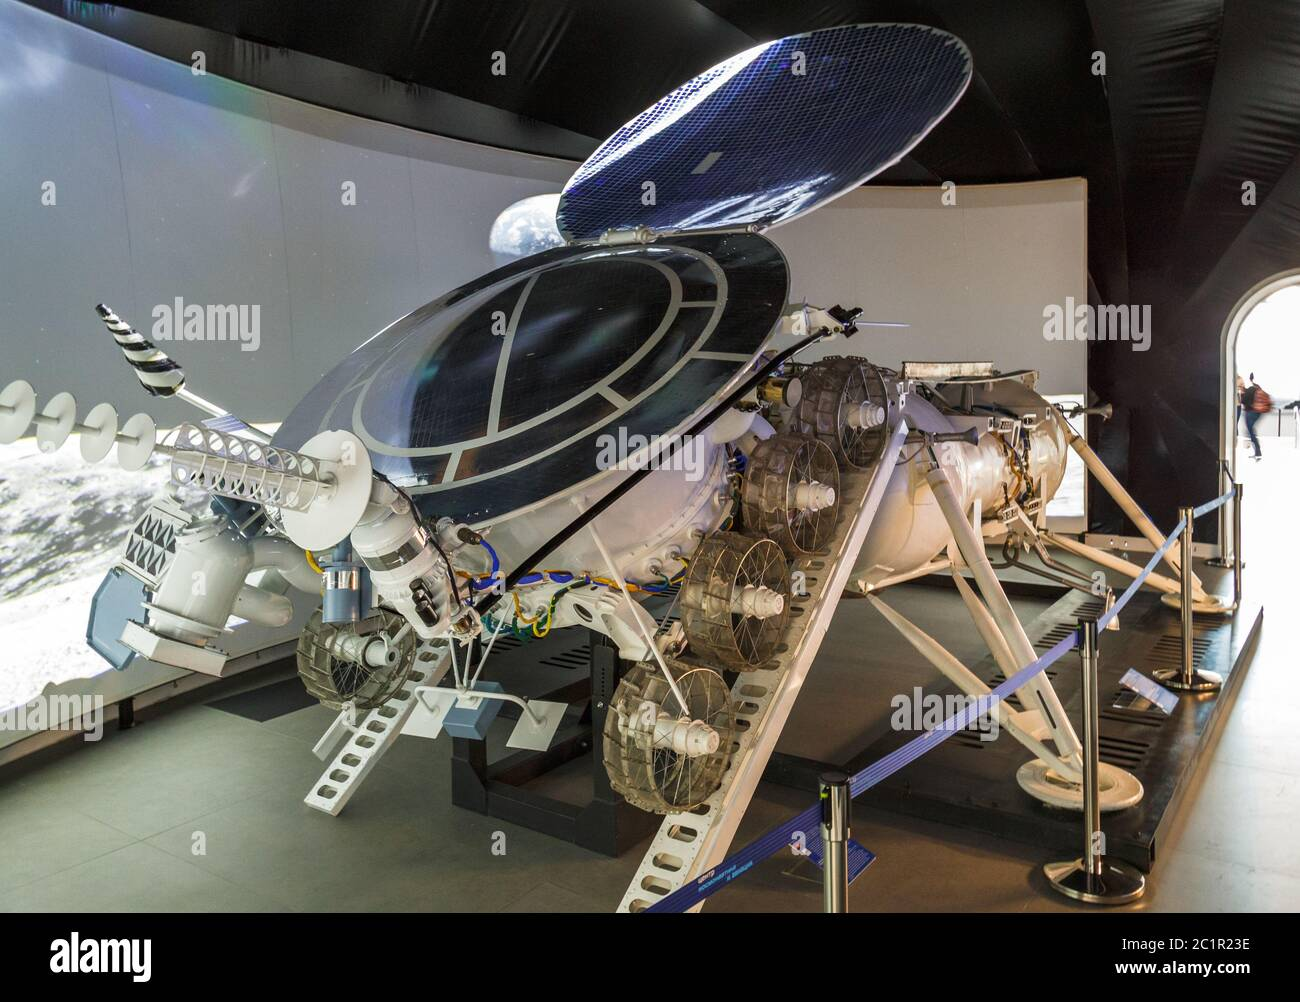 Moscow, Russia - November 28, 2018: Interior of the Space pavilion at VDNH. Lunokhod Moonwalker was a series of Soviet robotic l Stock Photo